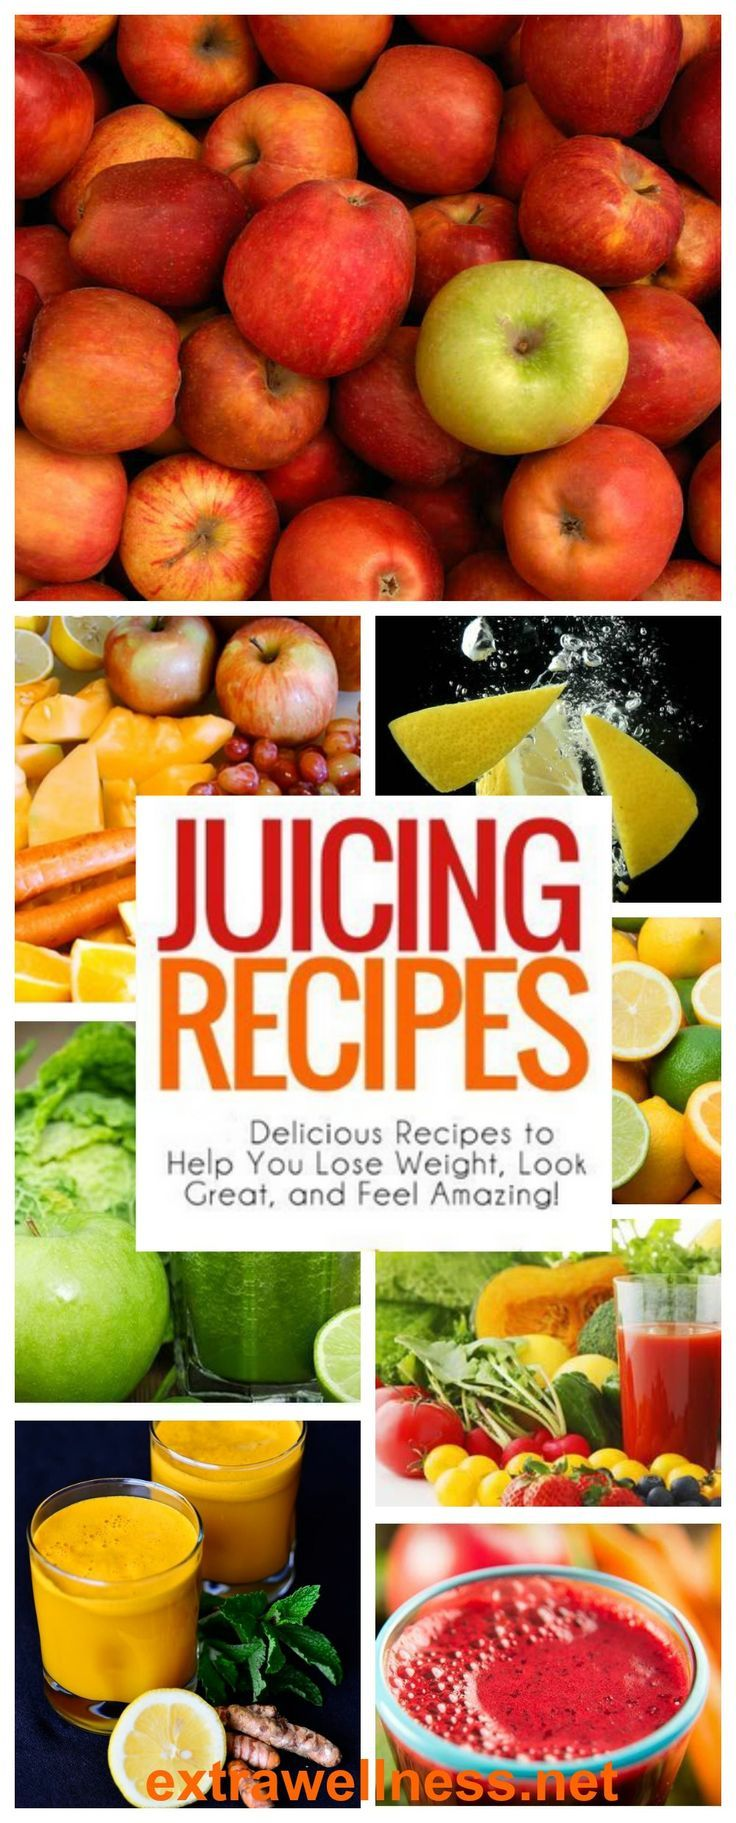 The vERY Best Juicing Recipes for Weight Loss.(Extremely Effective with Weight loss of 10 pounds in just 2 Weeks)